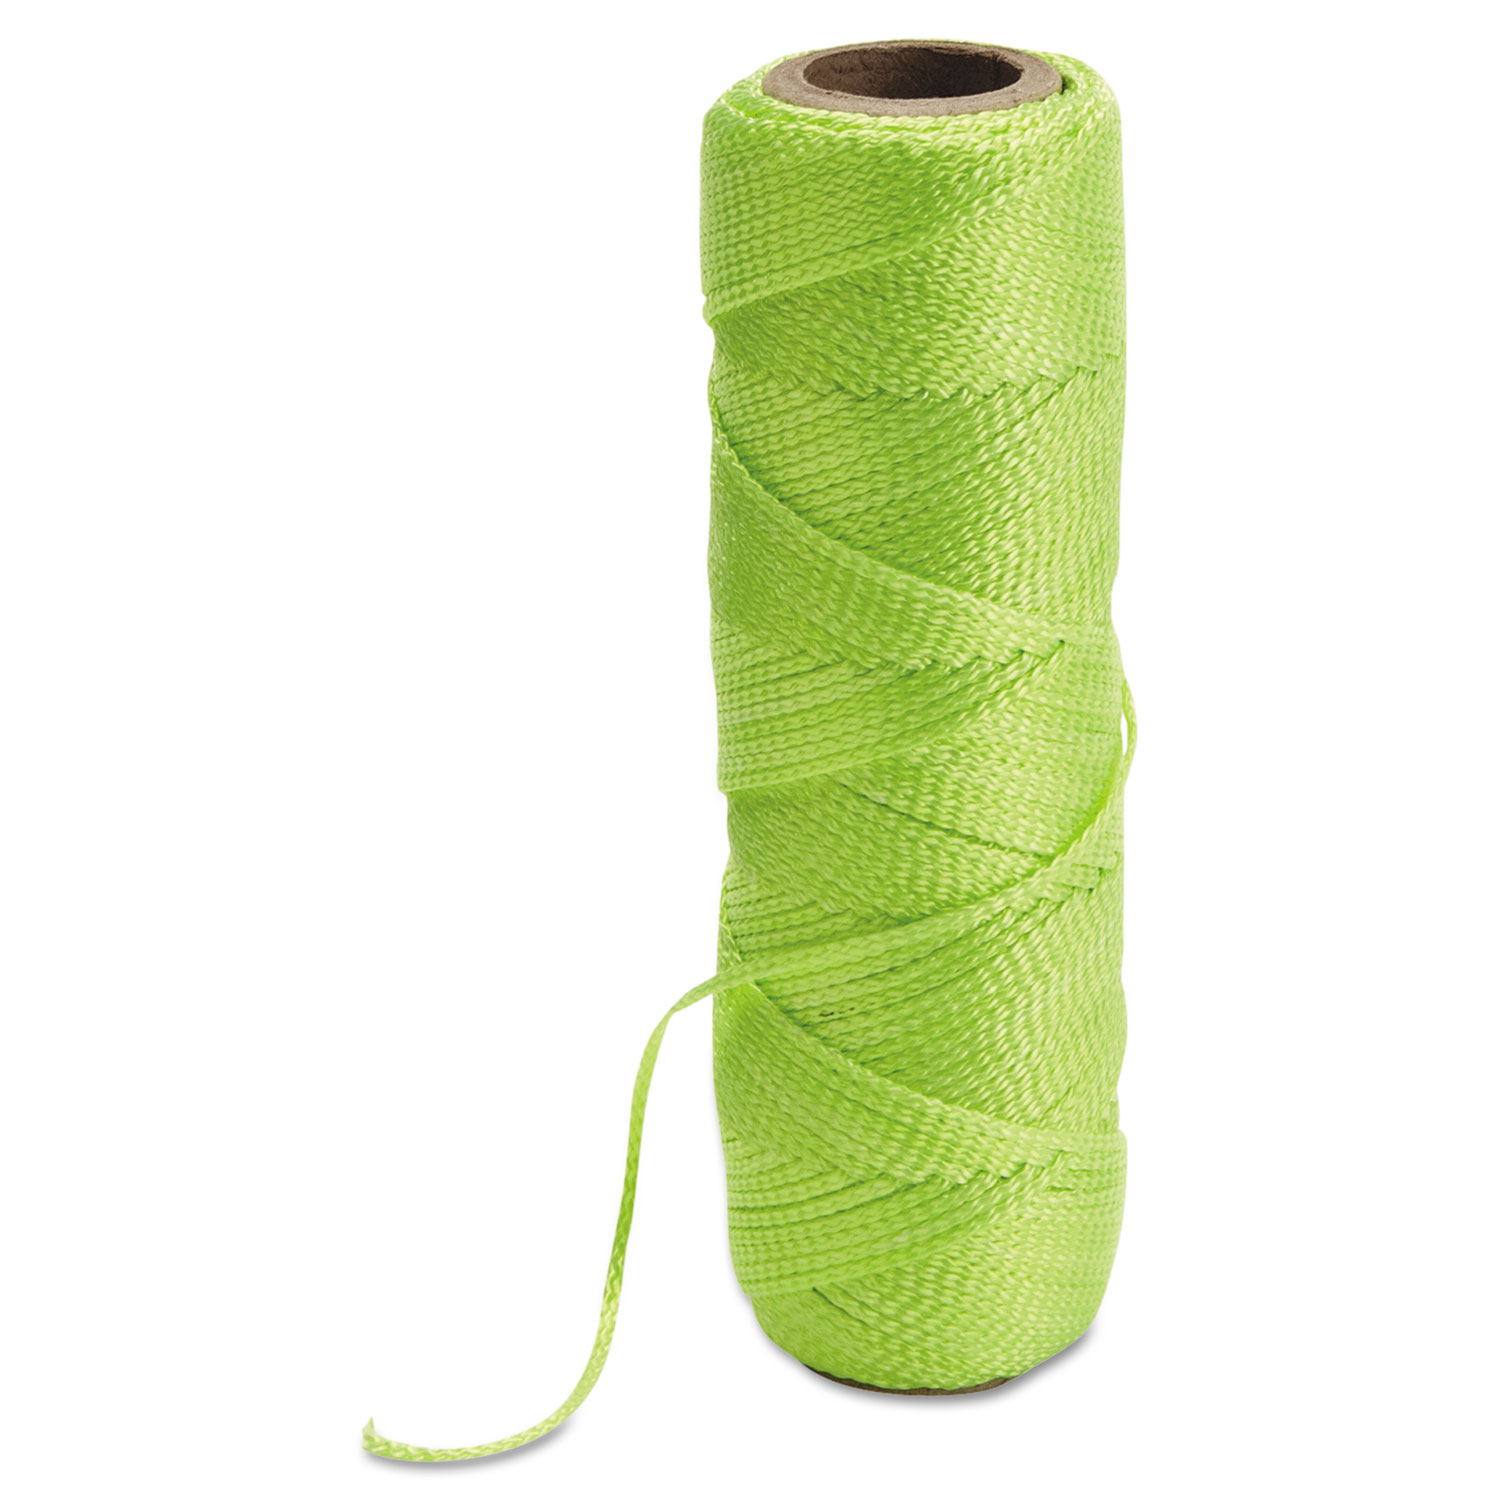 100% Braided Nylon Masons Line, 250ft, Fluorescent Yellow